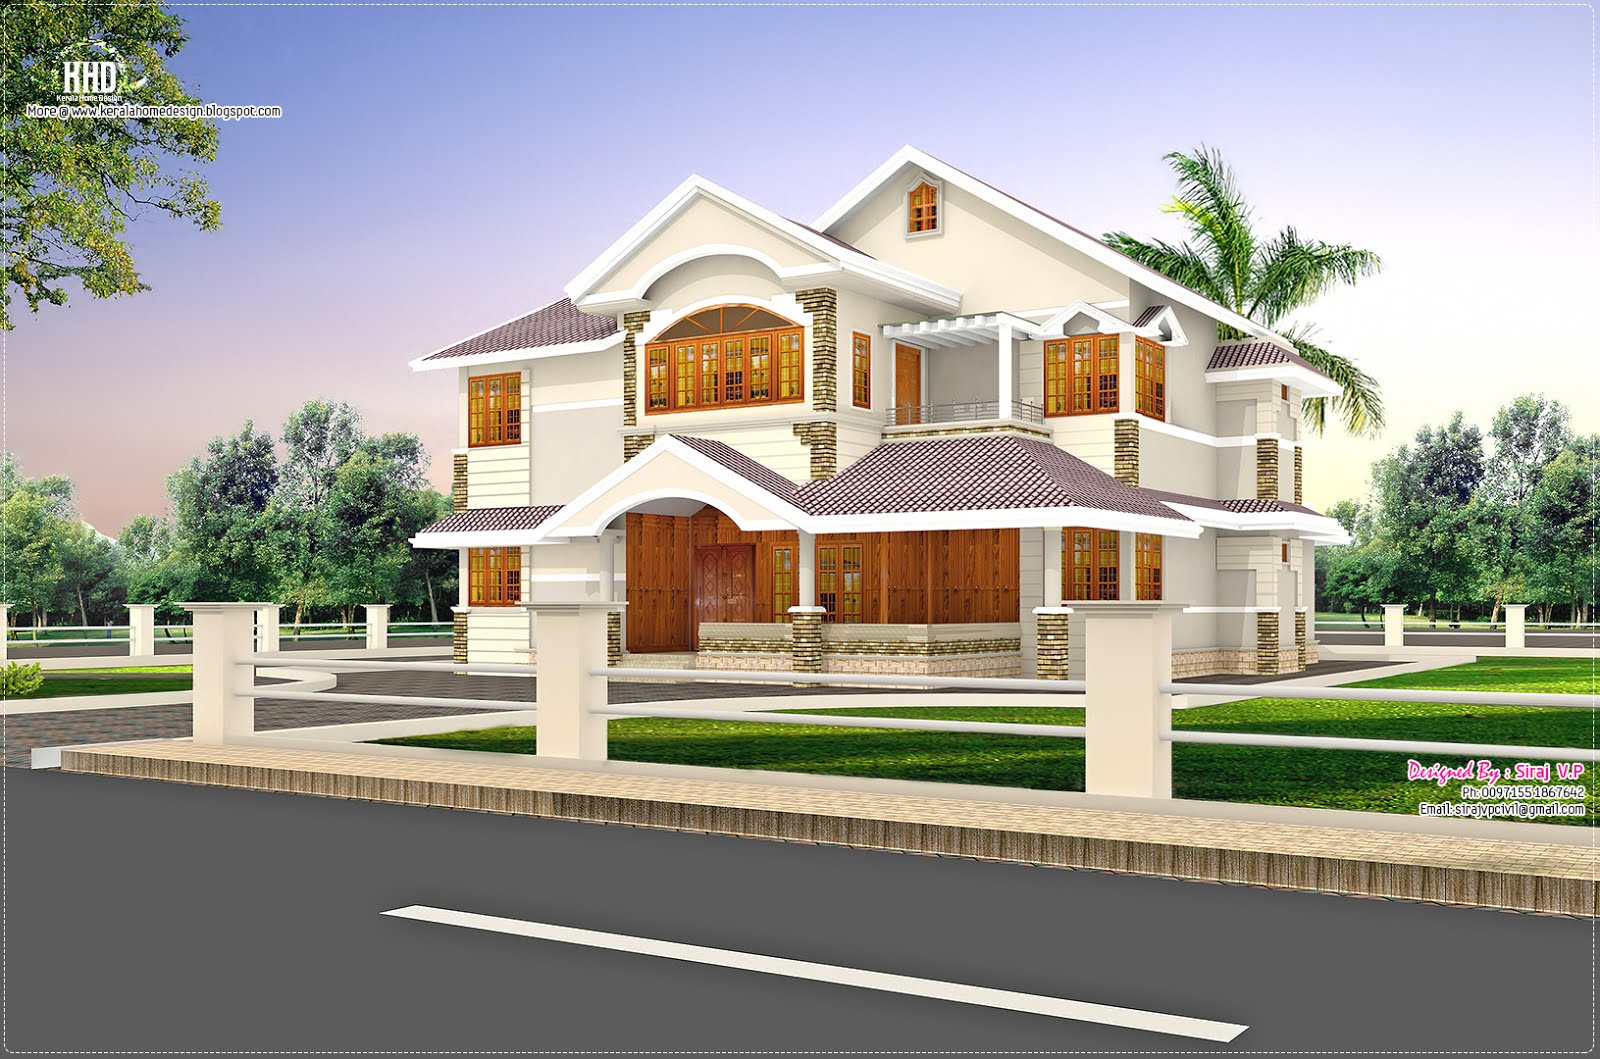 Home design 3d - Design house ...